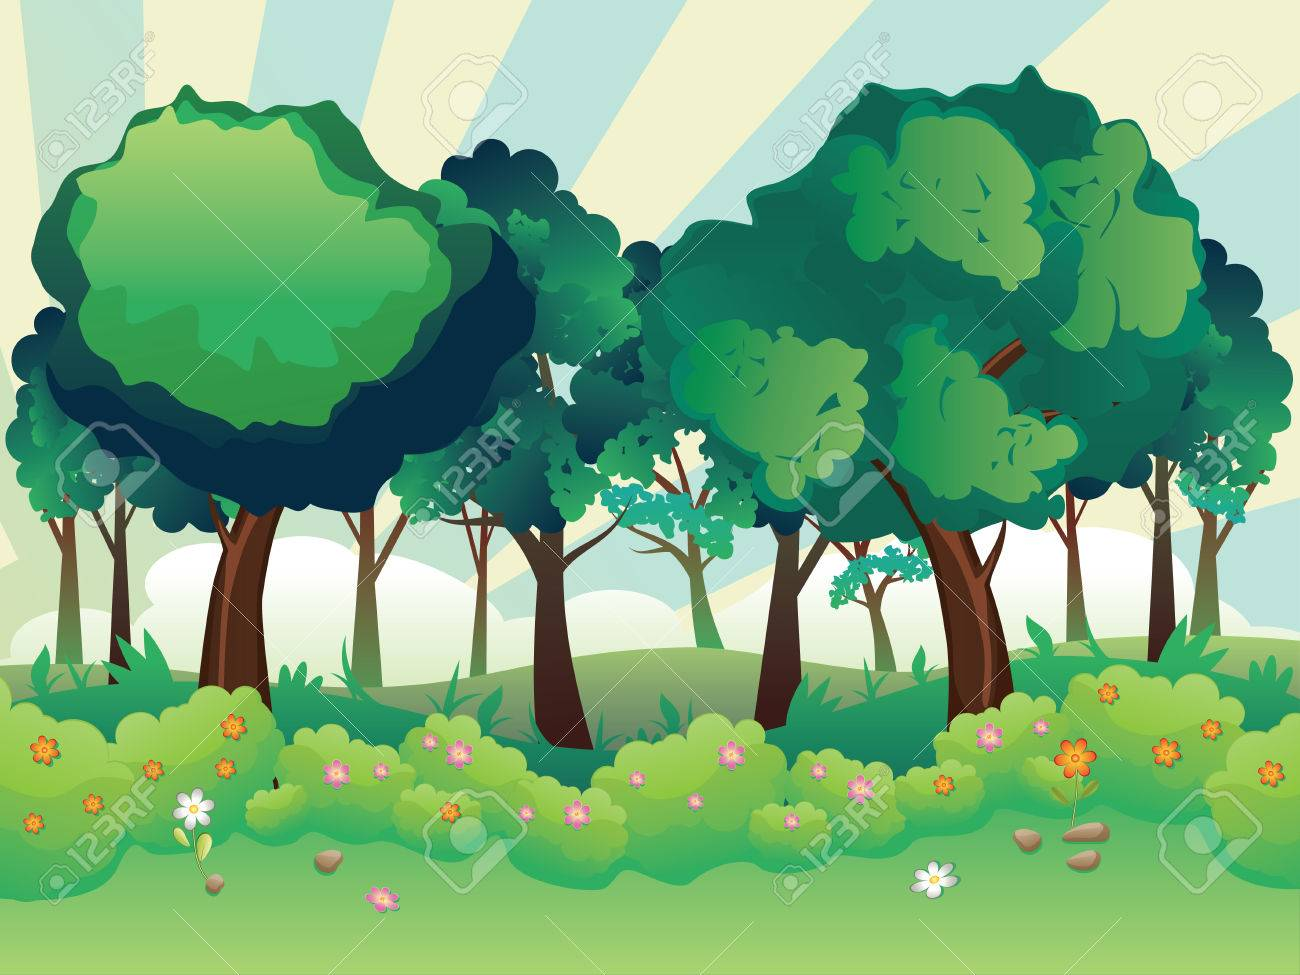 Cartoon Summer Forest Landscape With Green Shrubs Trees And Royalty Free Cliparts Vectors And Stock Illustration Image 64507393 6,688 transparent png illustrations and cipart matching cartoon tree. cartoon summer forest landscape with green shrubs trees and